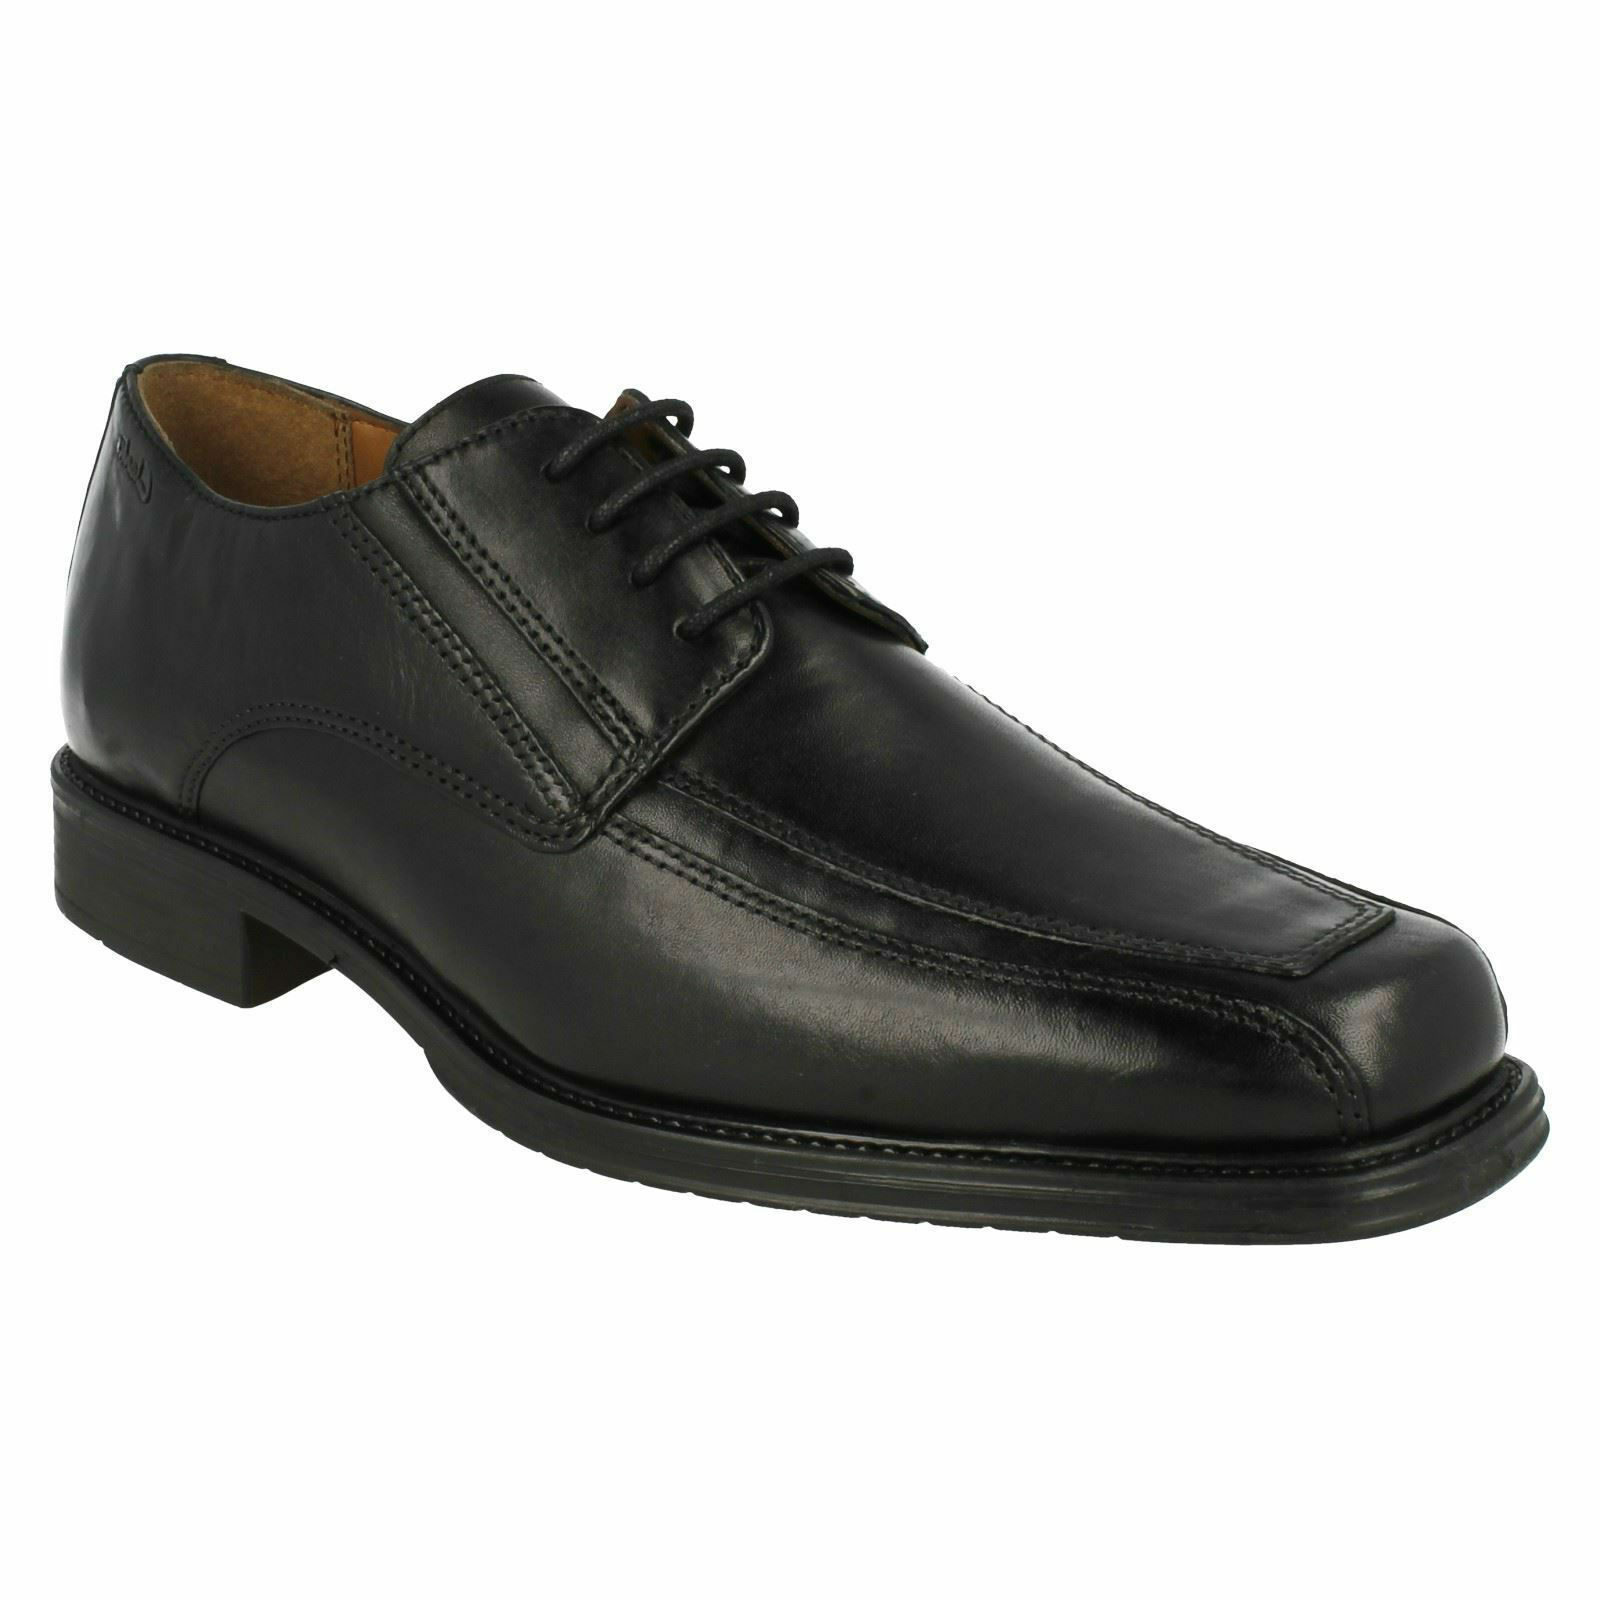 DRIGGS WALK MENS CLARKS BLACK LEATHER LACE UP SMART FORMAL OFFICE WORK SHOES